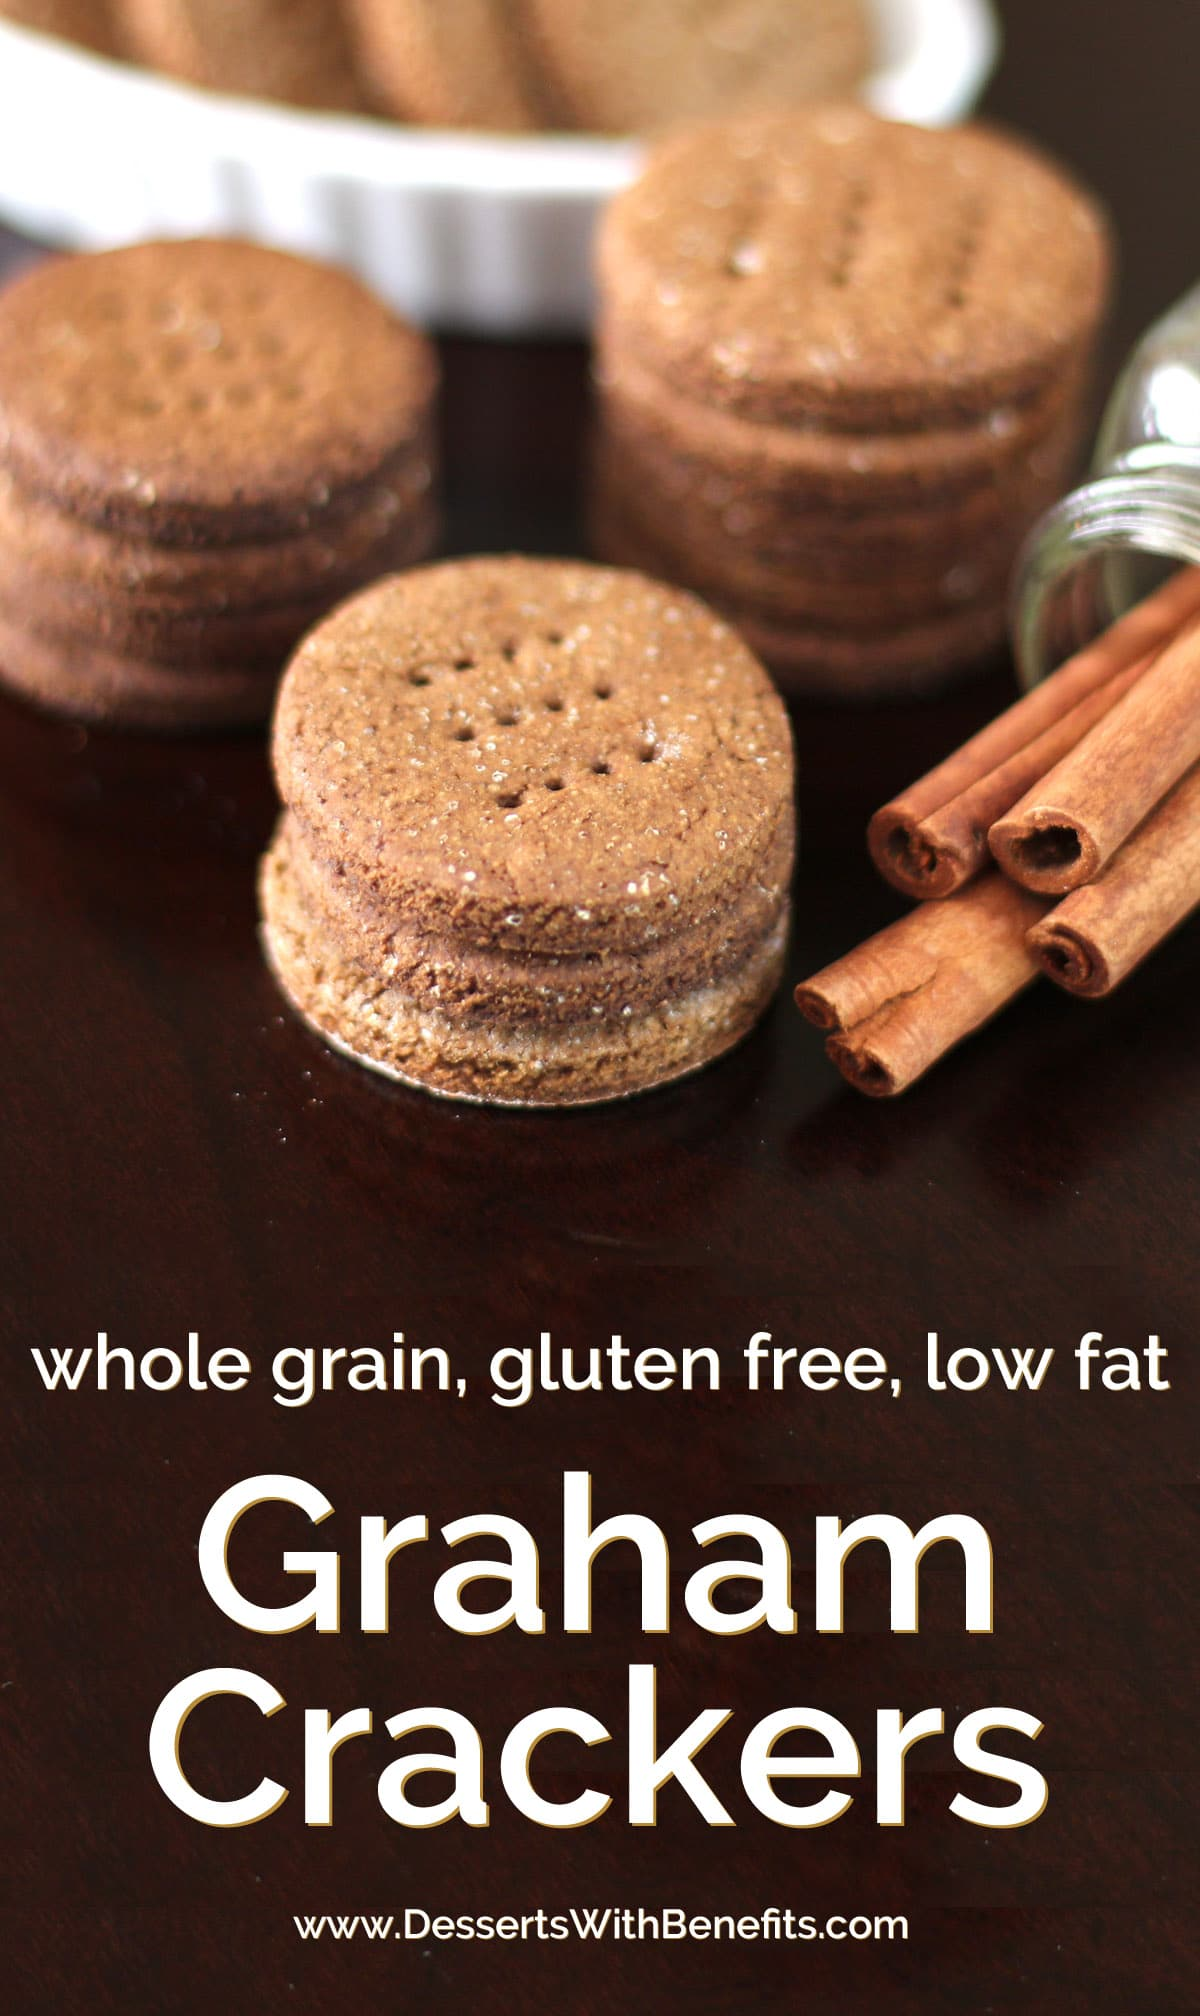 Homemade Gluten Free Graham Crackers made whole grain and low fat!